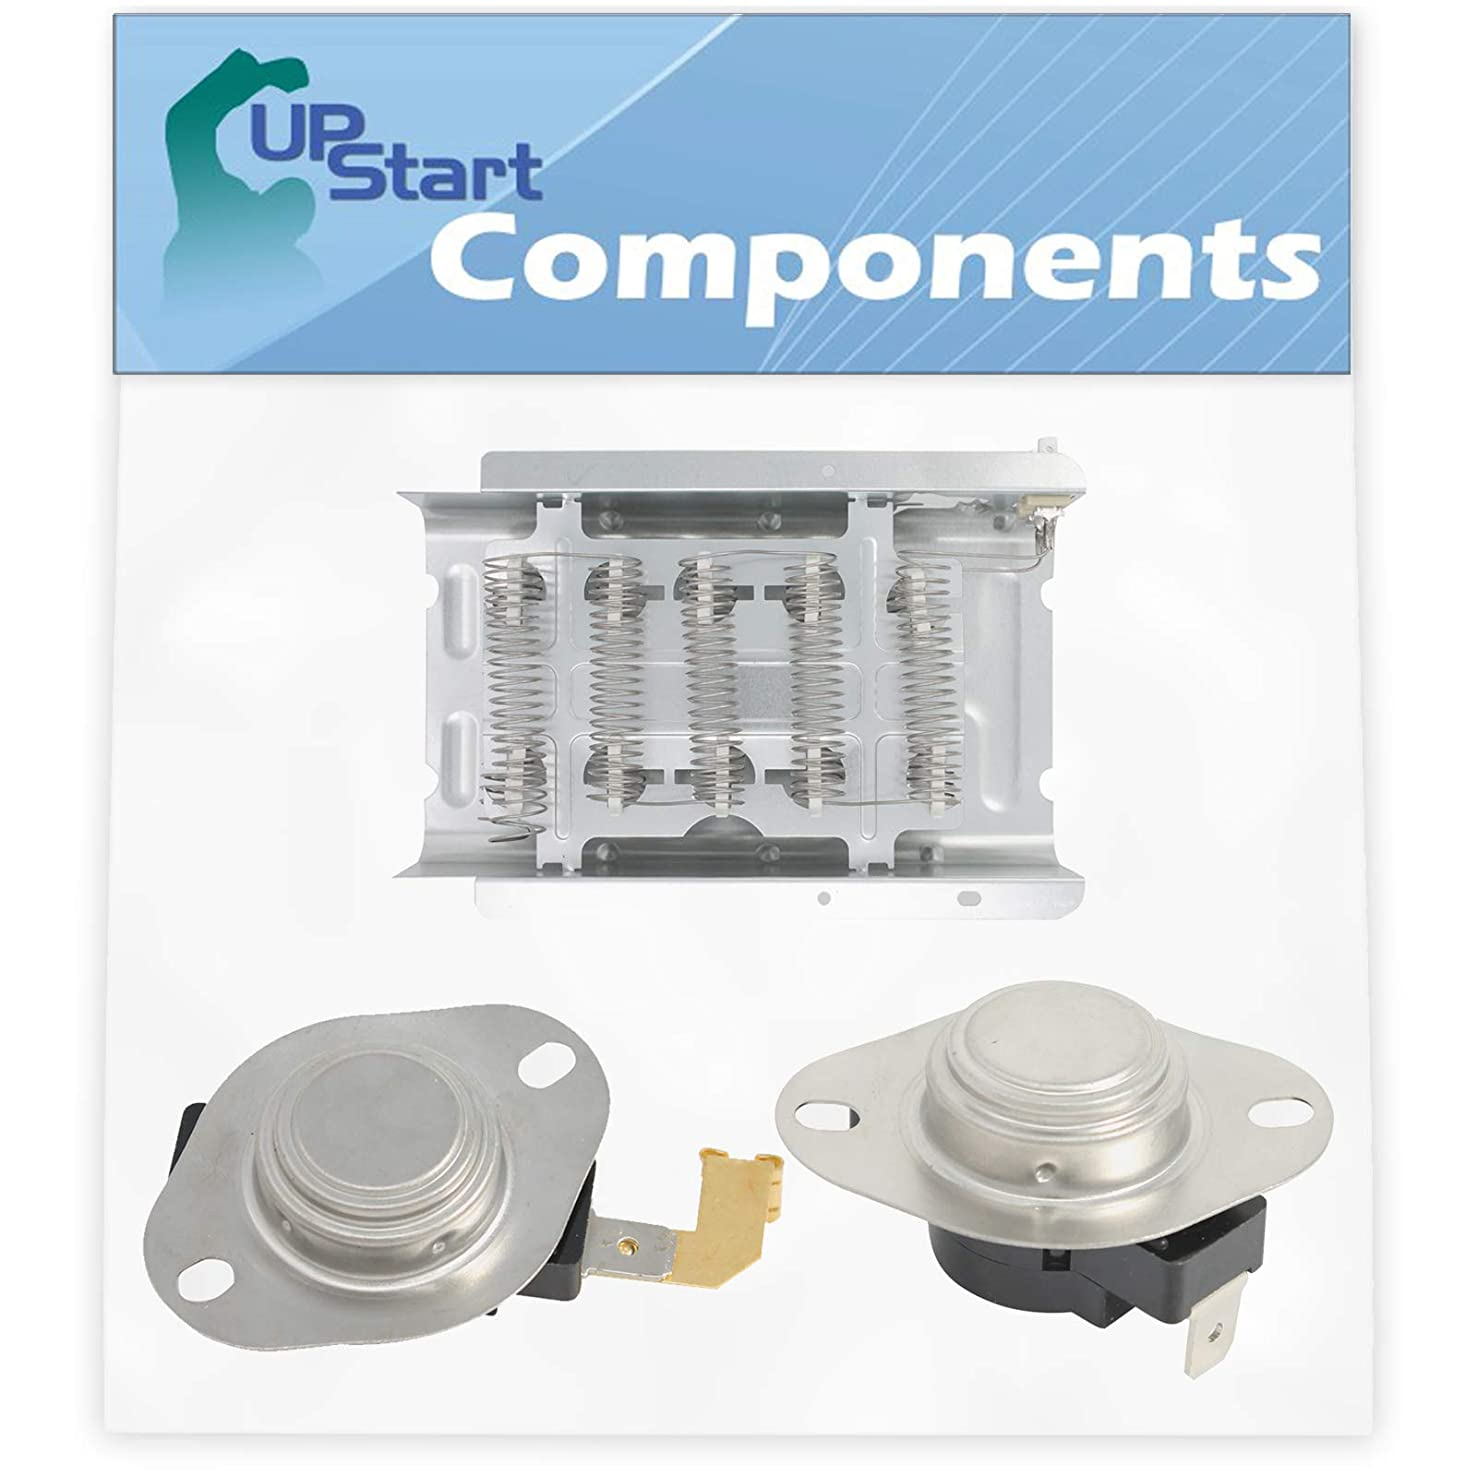 279838, 3977767 & 3392519 Dryer Heating Element & Thermostat Combo Pack Replacement for Whirlpool 4GWED4900YQ2 - Compatible with 279838, 3977767 & 3392519 Heater Element and Thermostat Combo Pack